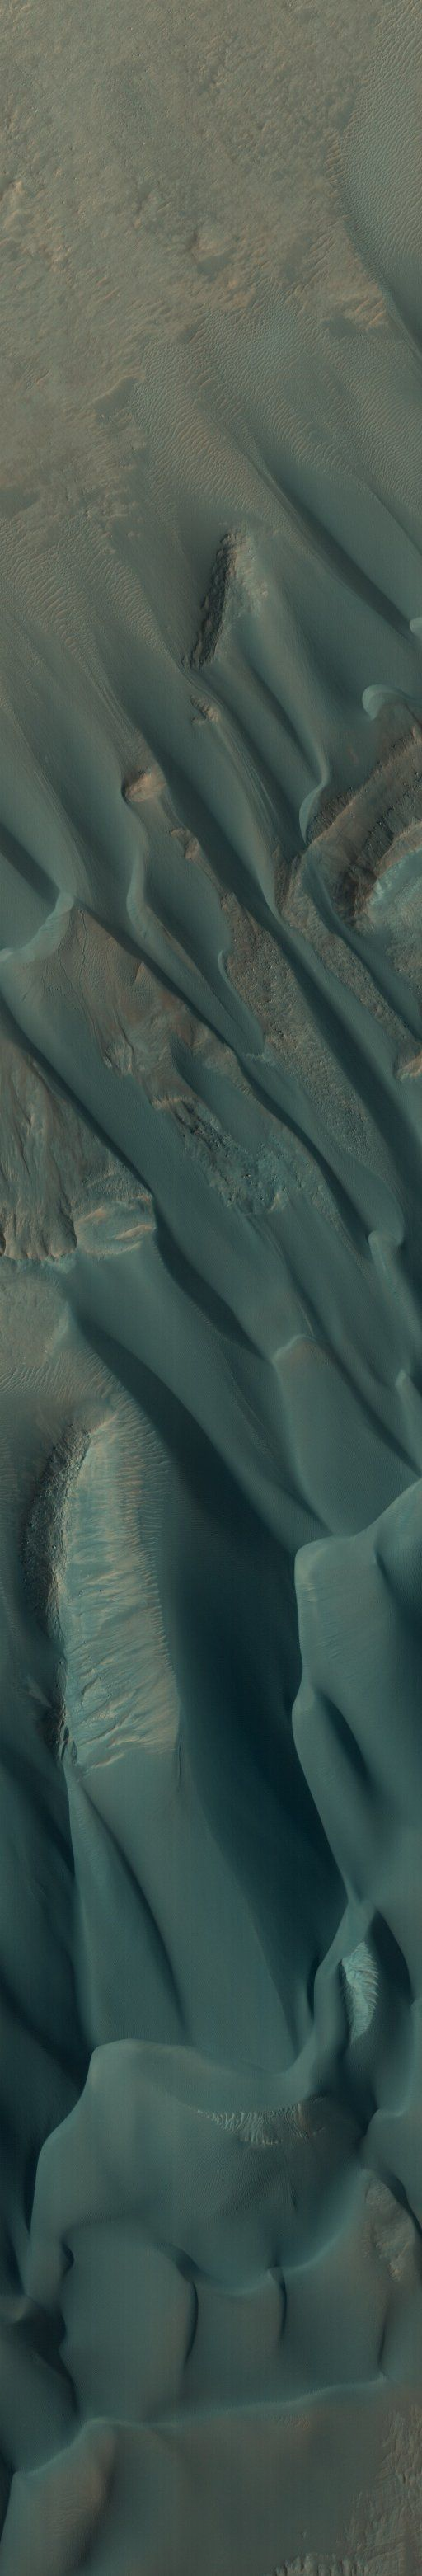 Just some dunes...on MARS. Western Nereidum Montes